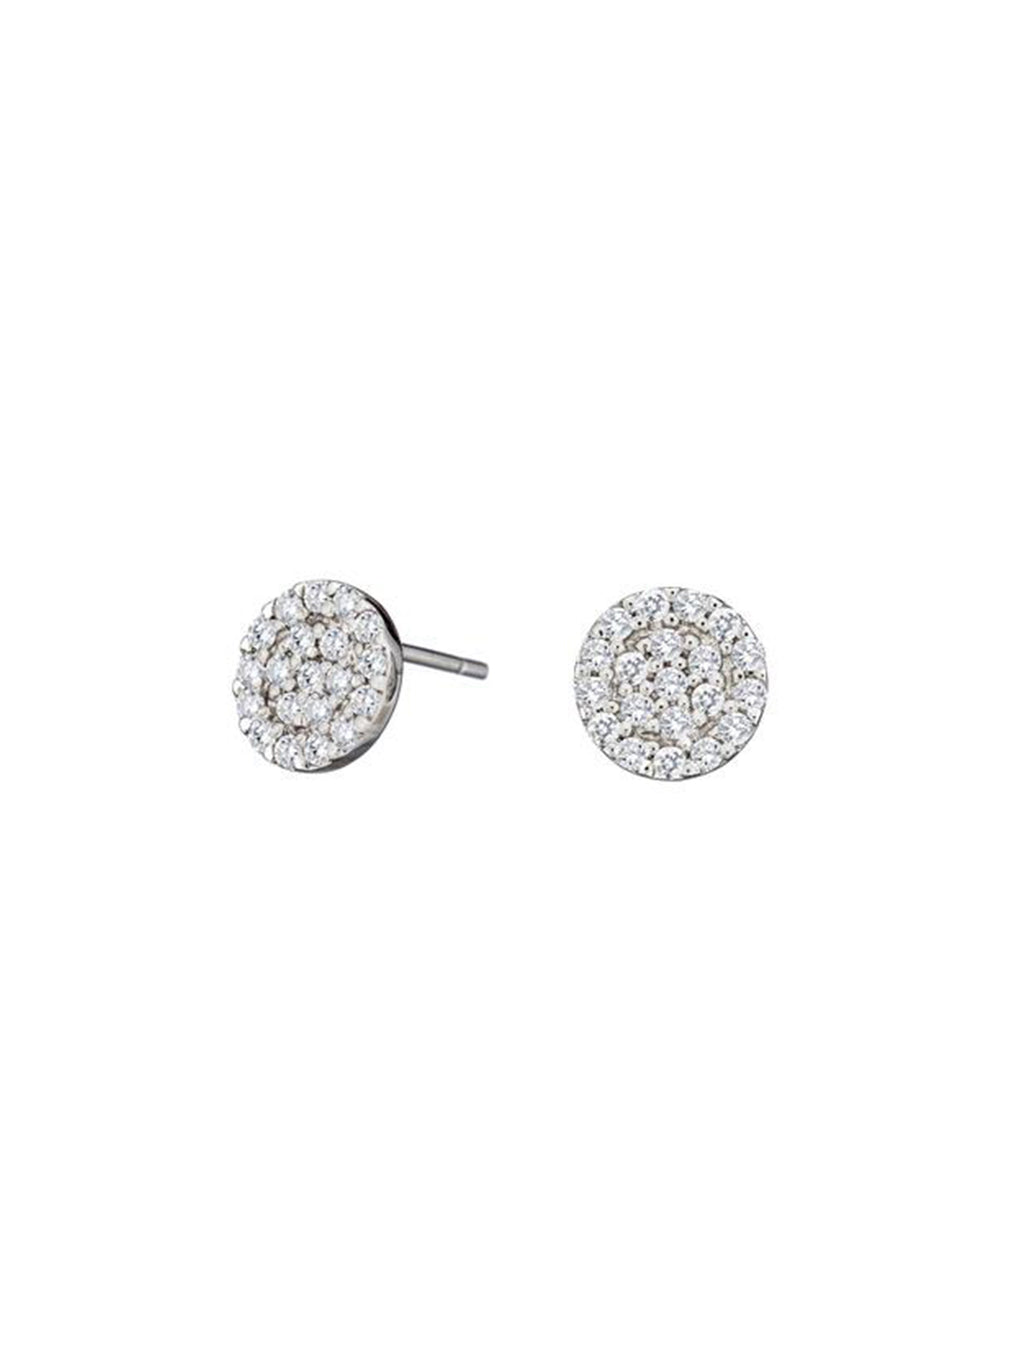 Diamond Pave Disk Earrings - Alef Bet Jewelry by Paula